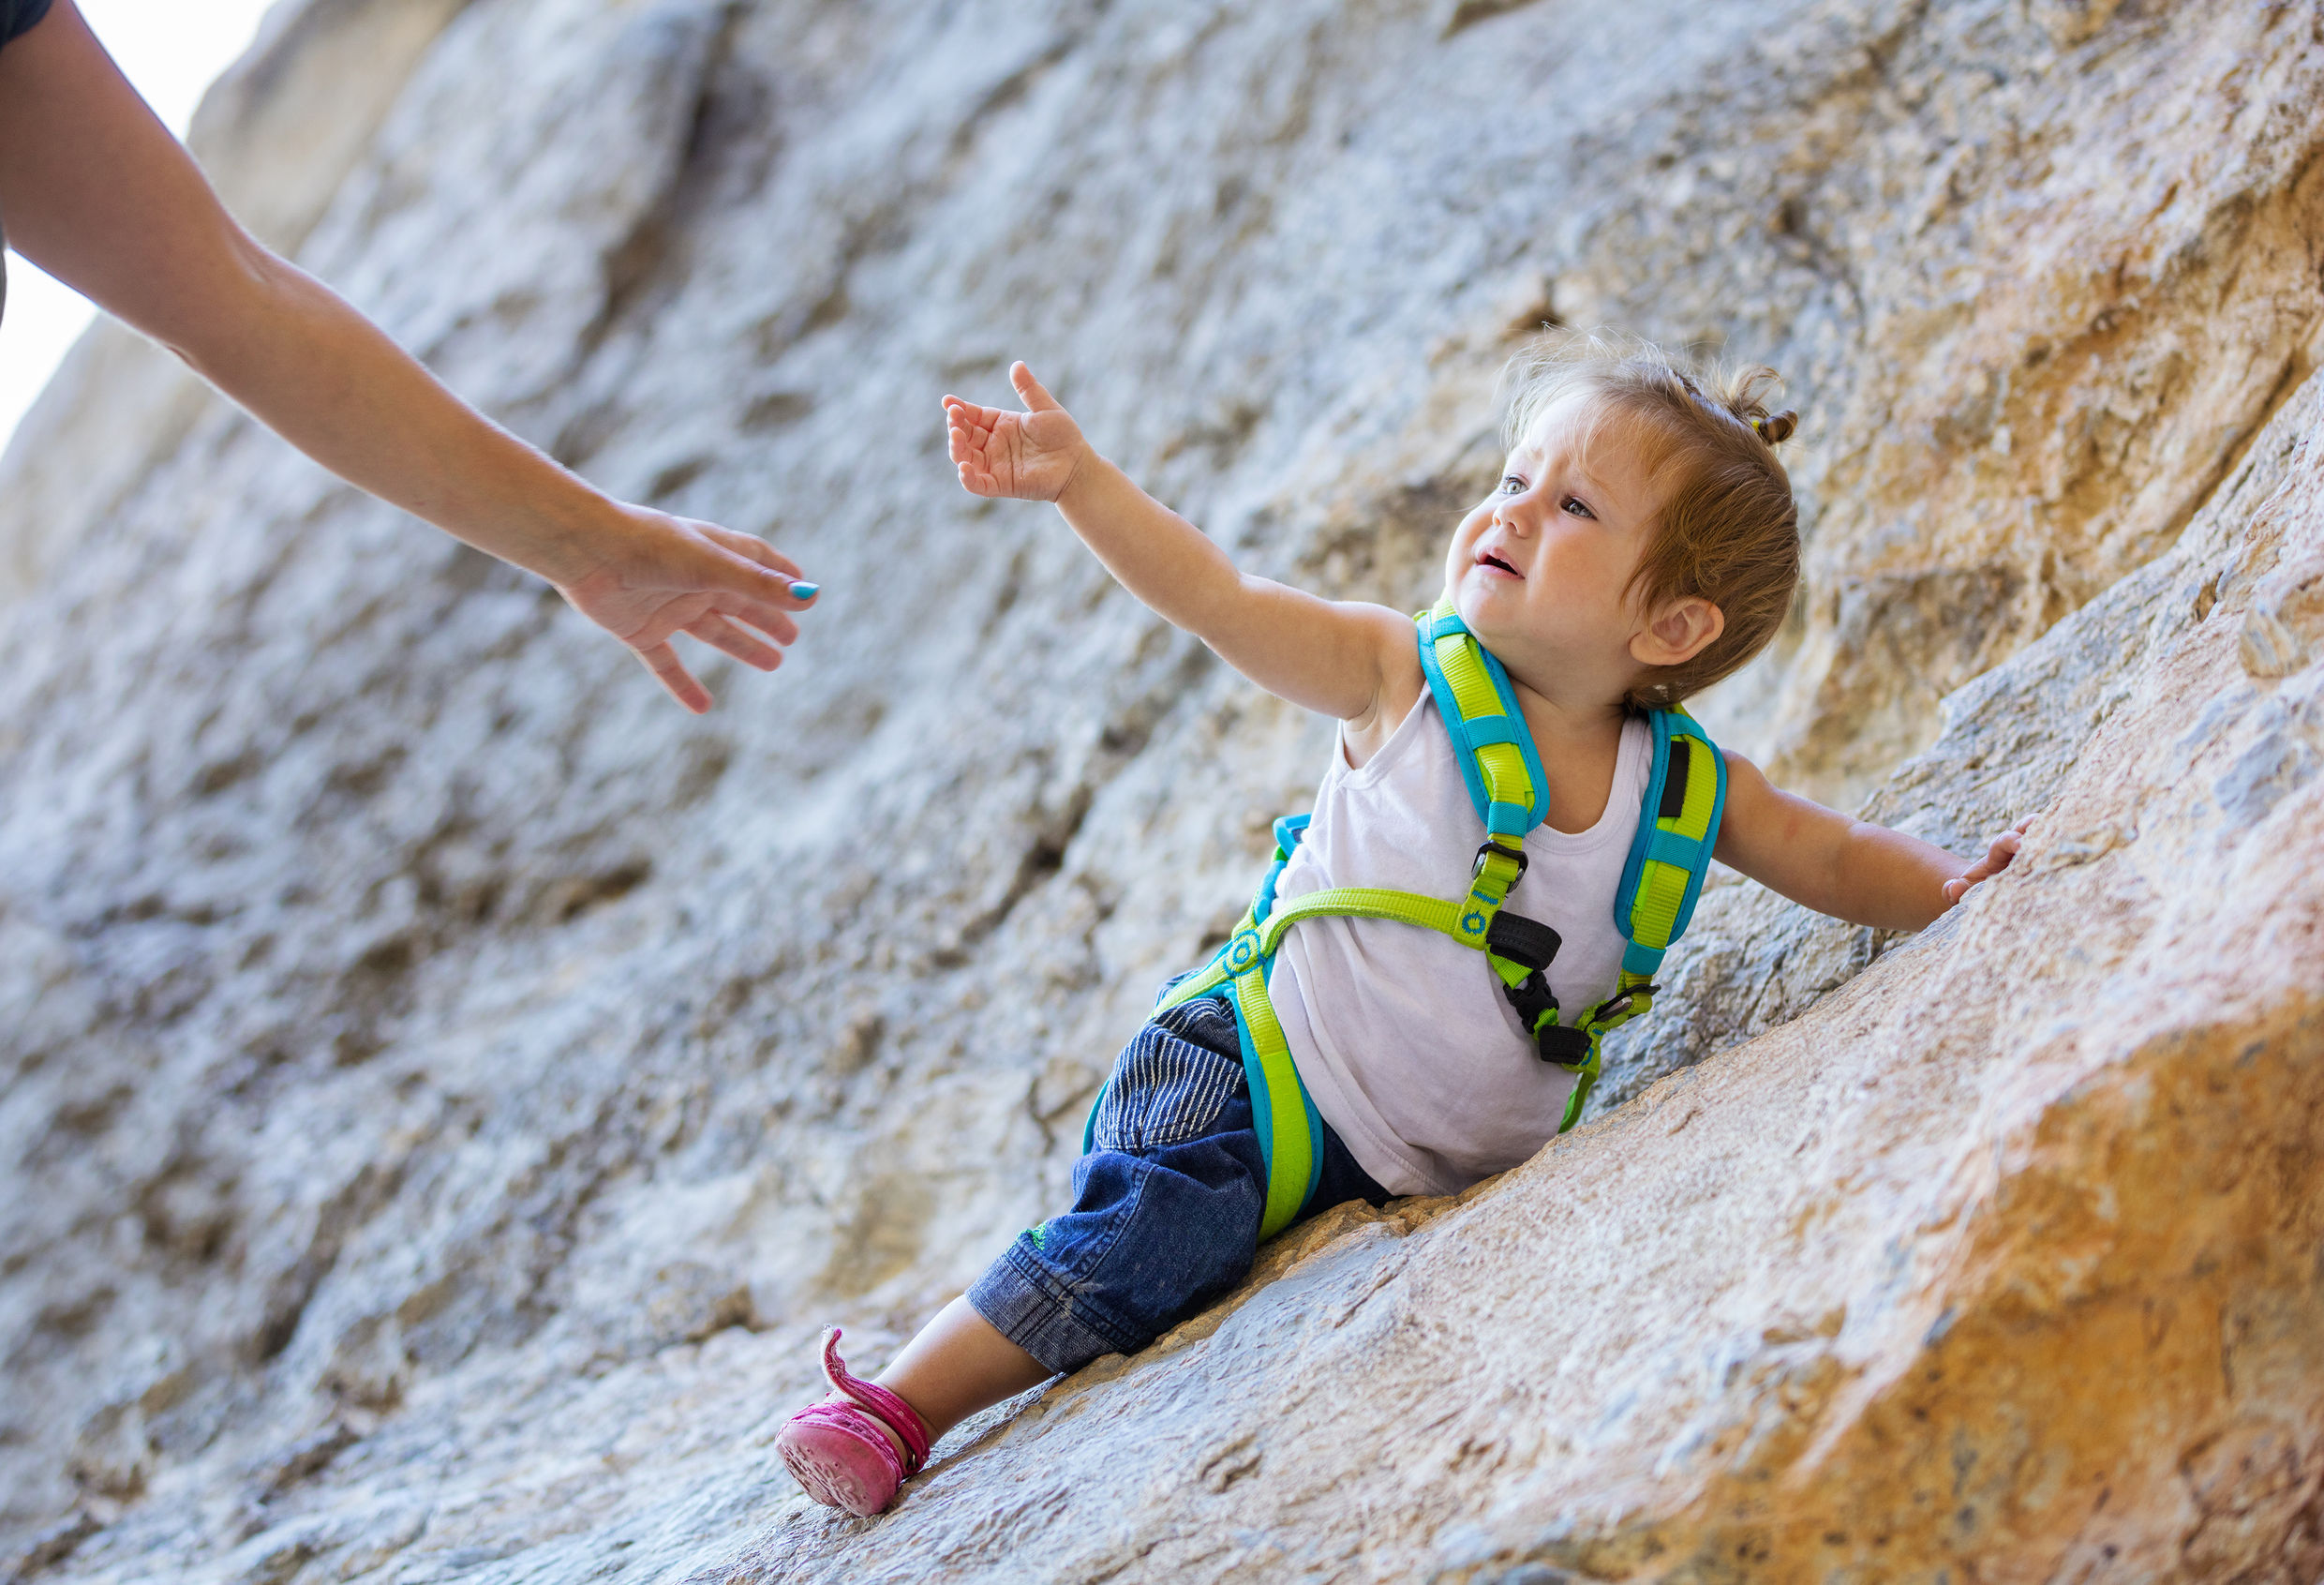 Little girl in climbing gear stretching out hand